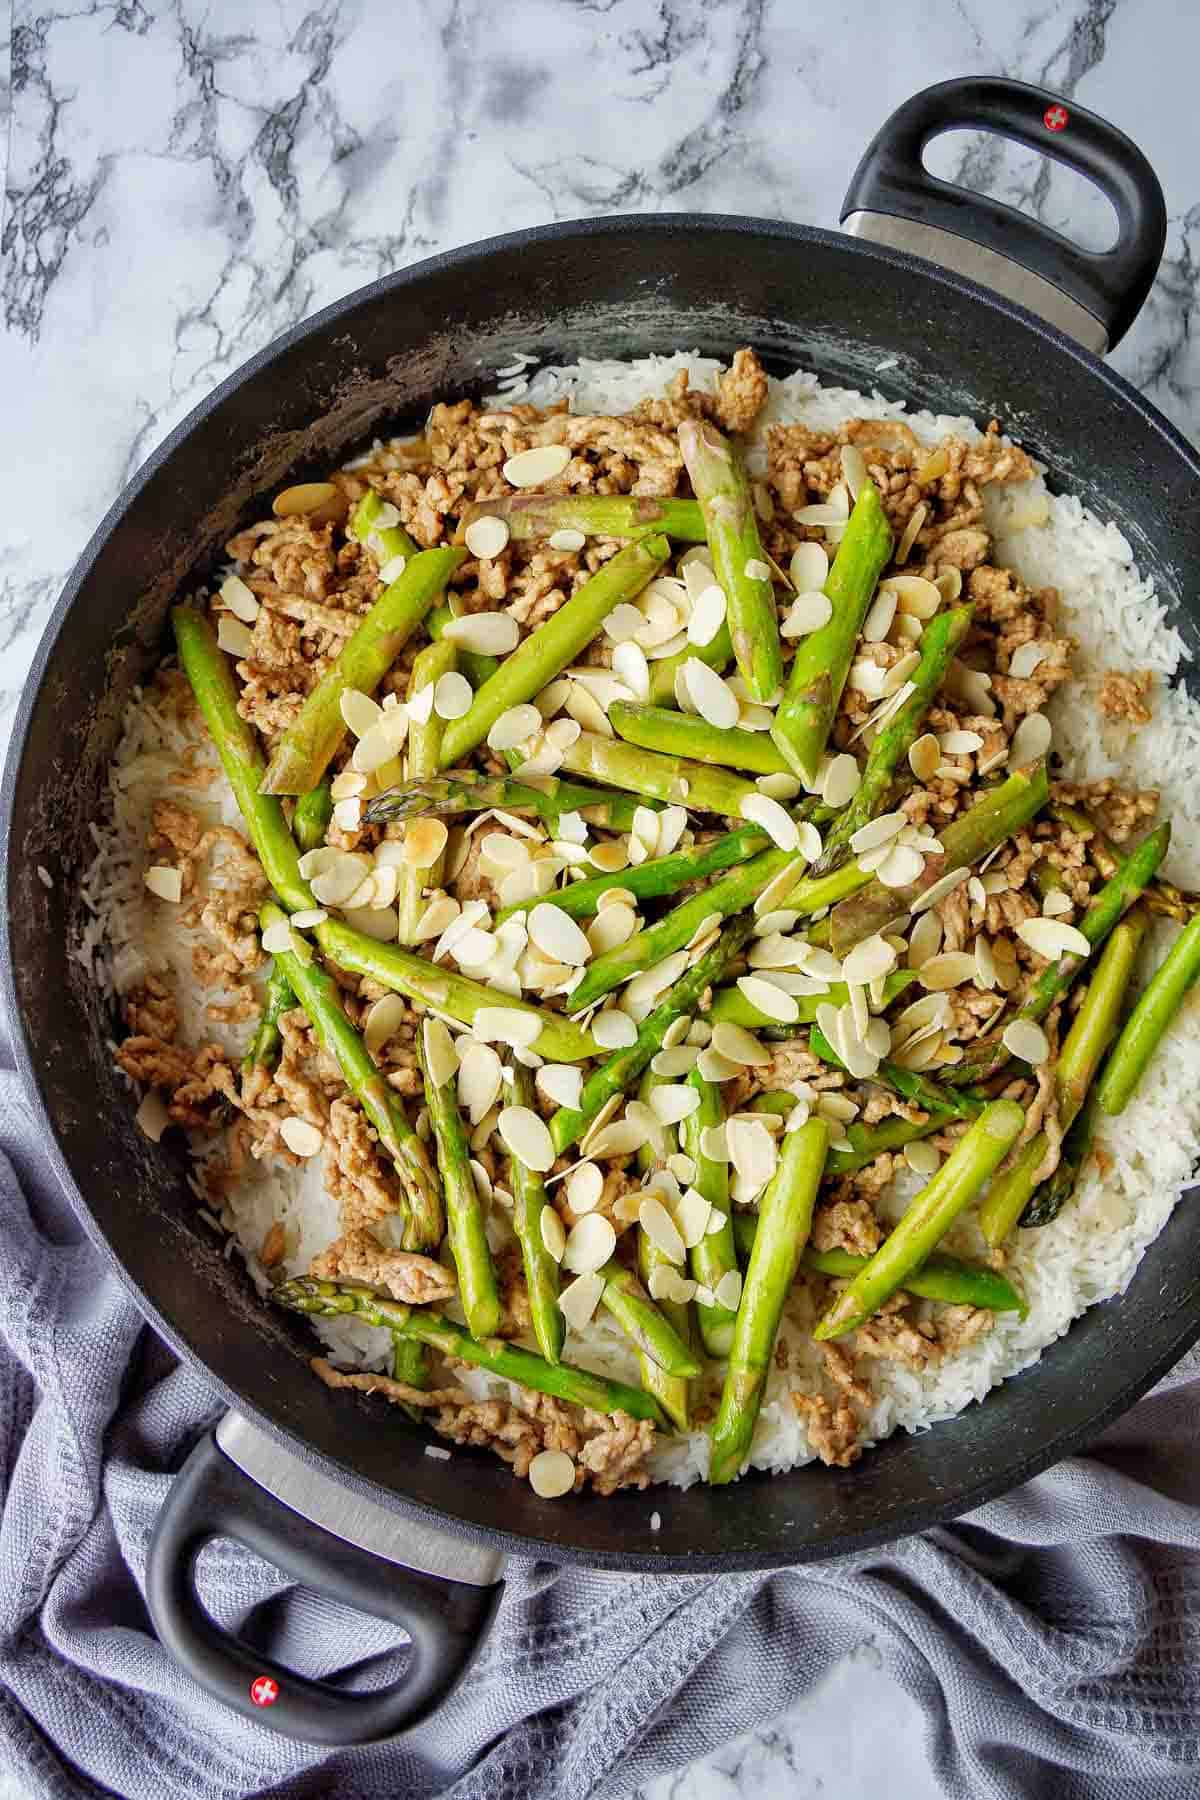 Asparagus and Pork in sauté pan with flaked almonds